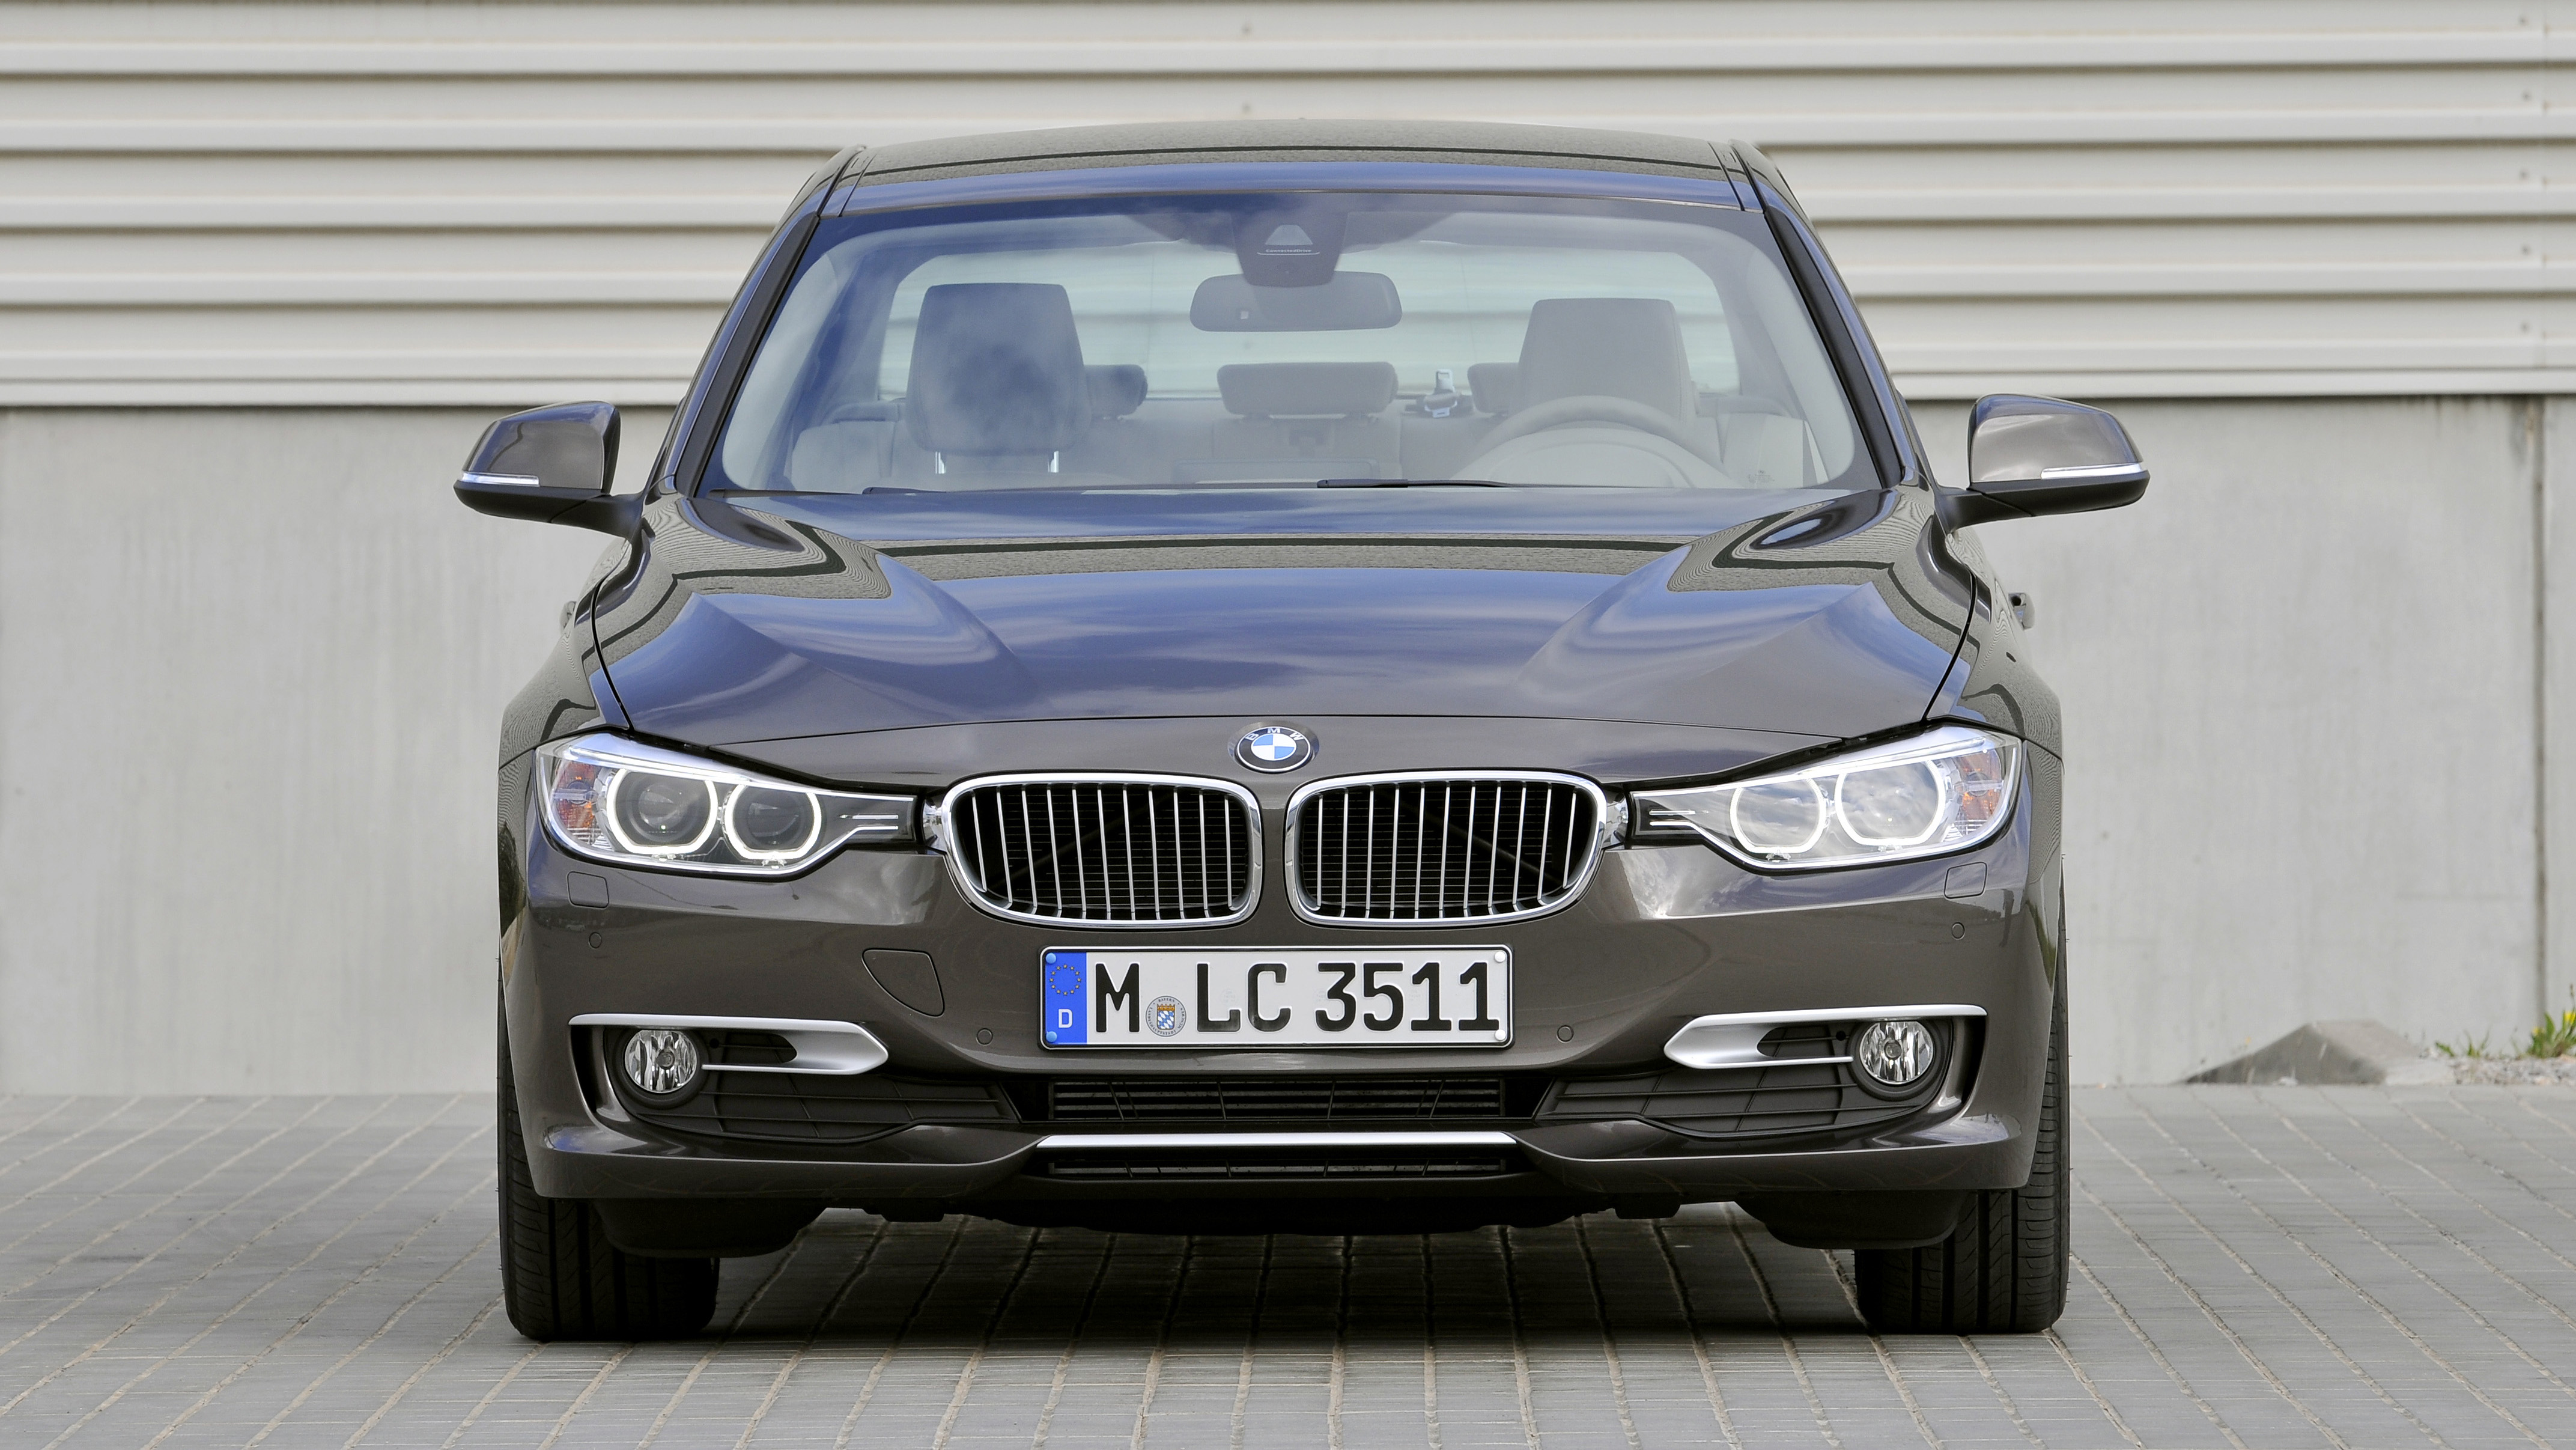 2012 BMW 3 SERIES SEDAN TO PREMIERE AT THE NORTH AMERICAN INTERNATIONAL AUTO SHOW IN DETROIT ON JANUARY 9th<br />